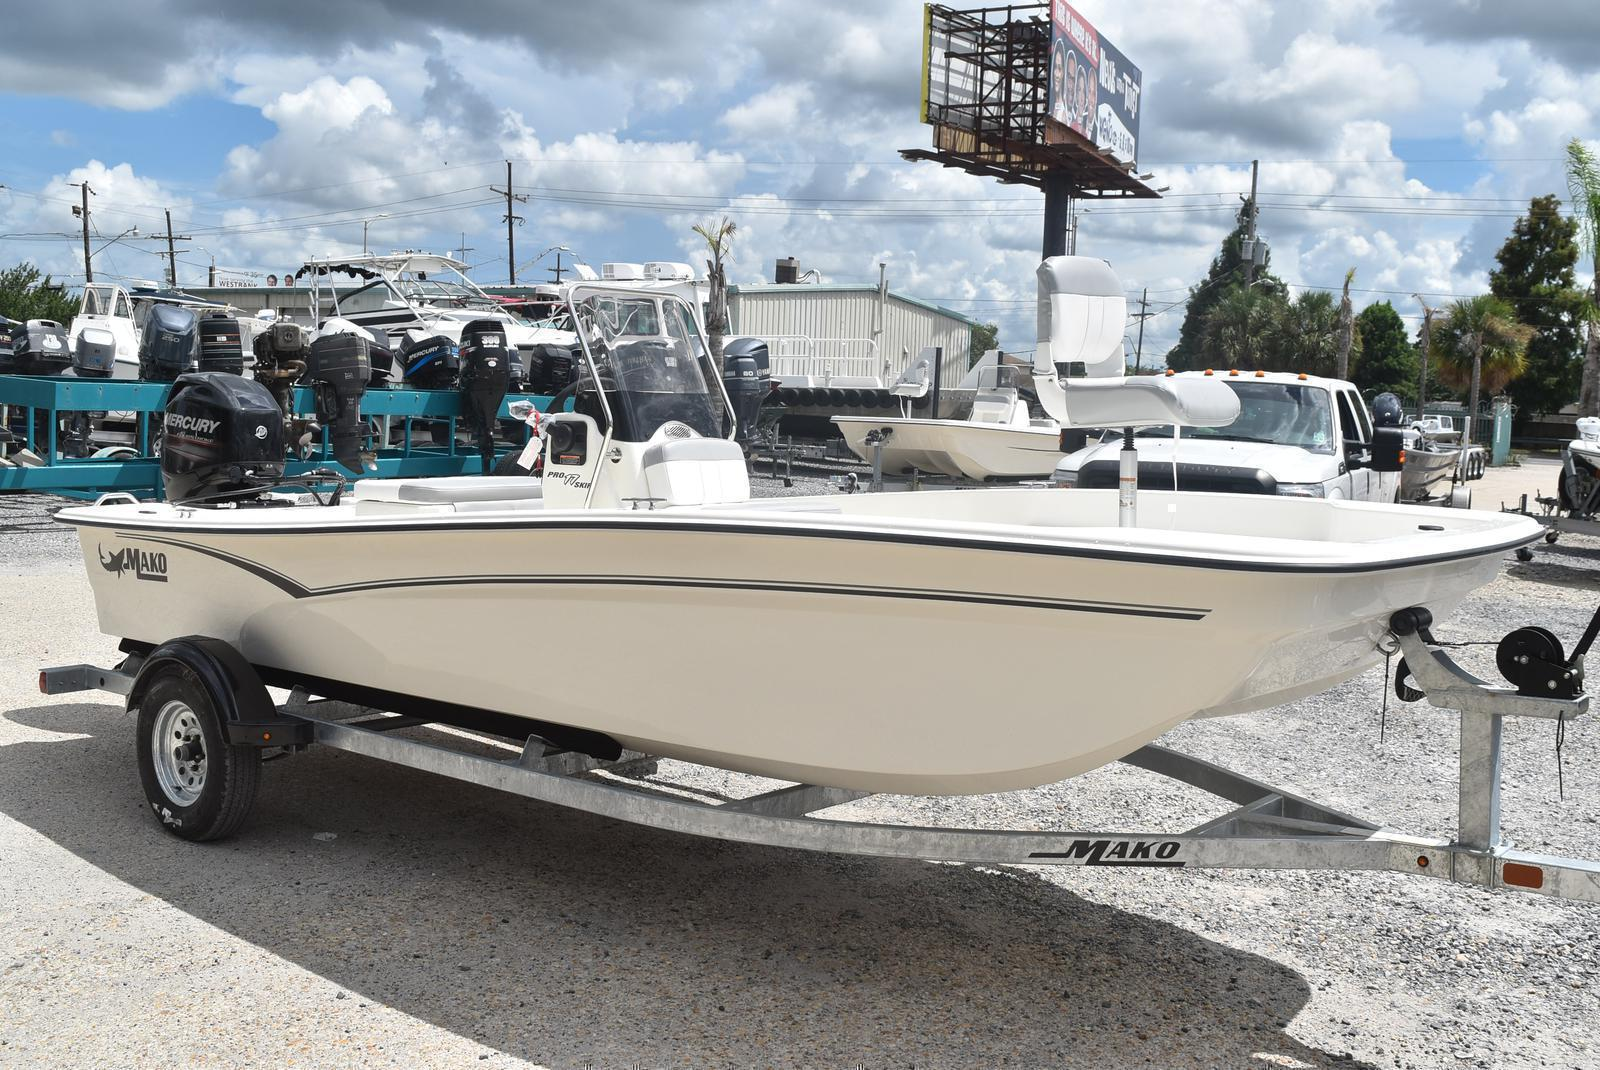 2020 Mako boat for sale, model of the boat is Pro Skiff 17, 75 ELPT & Image # 644 of 702